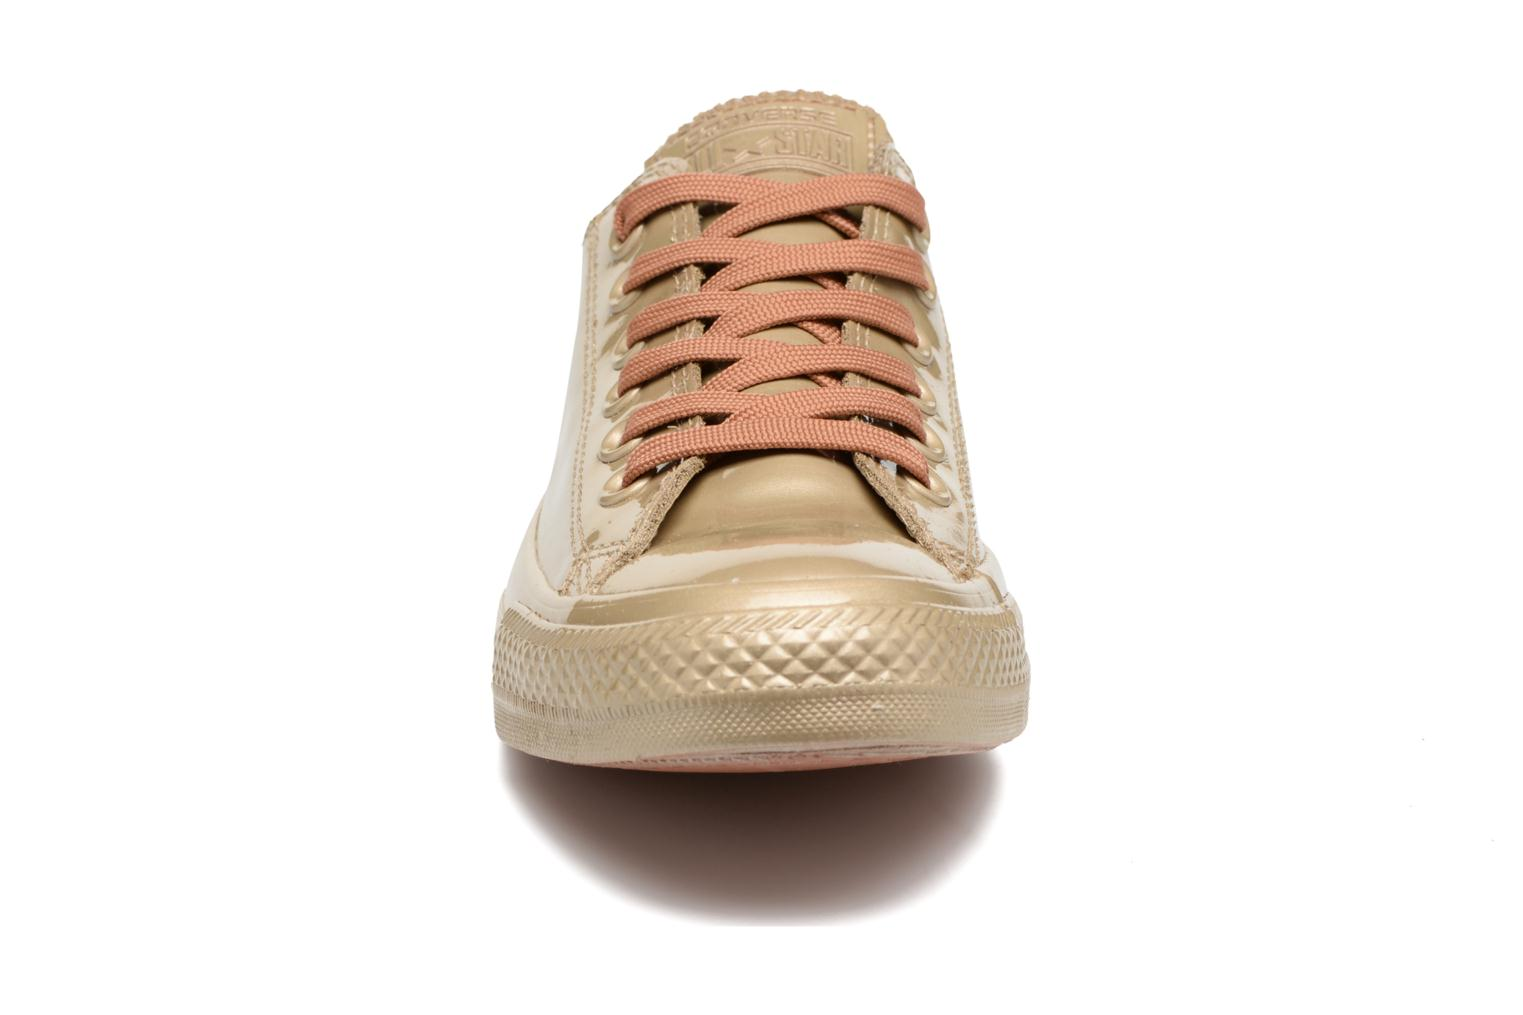 Ctas Metallic Rubber Ox W Blush Gold/Gold